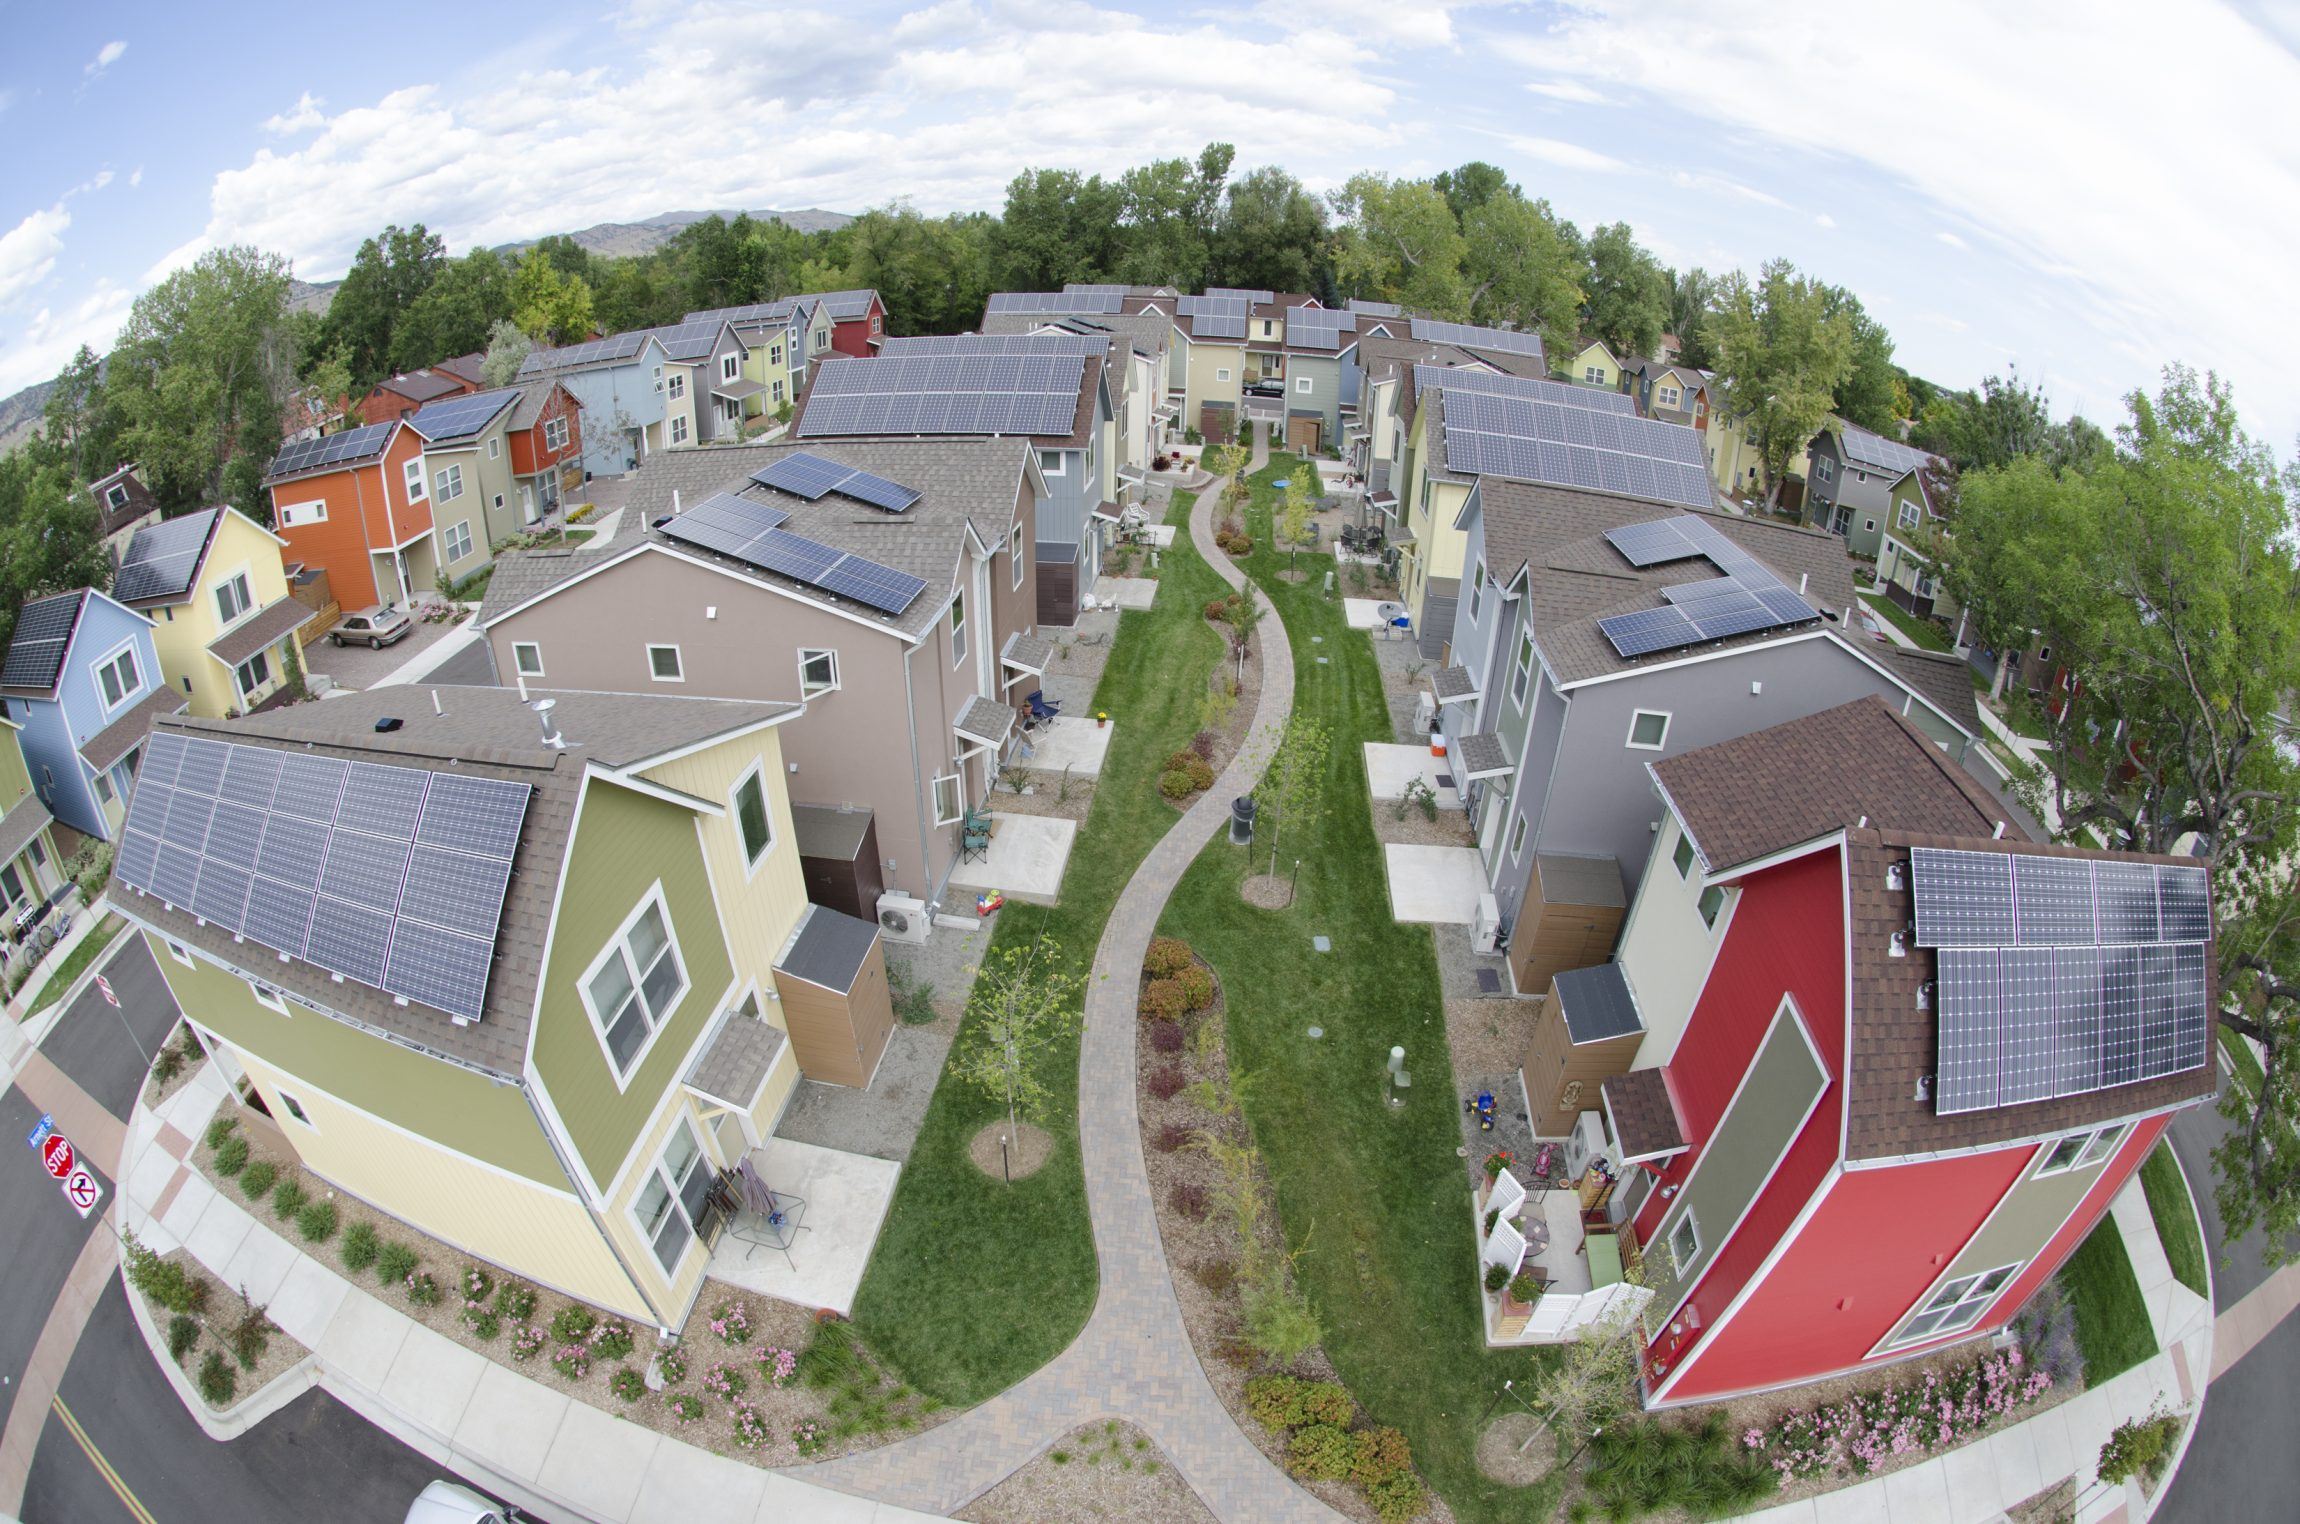 According to the National Renewable Energy Lab (NREL), distributed energy resources like these photovoltaic (PV) systems in a Boulder neighborhood—especially when they are paired with on-site storage—may eventually make large centralized power plants obsolete. Photo Credit: Topher Donahue